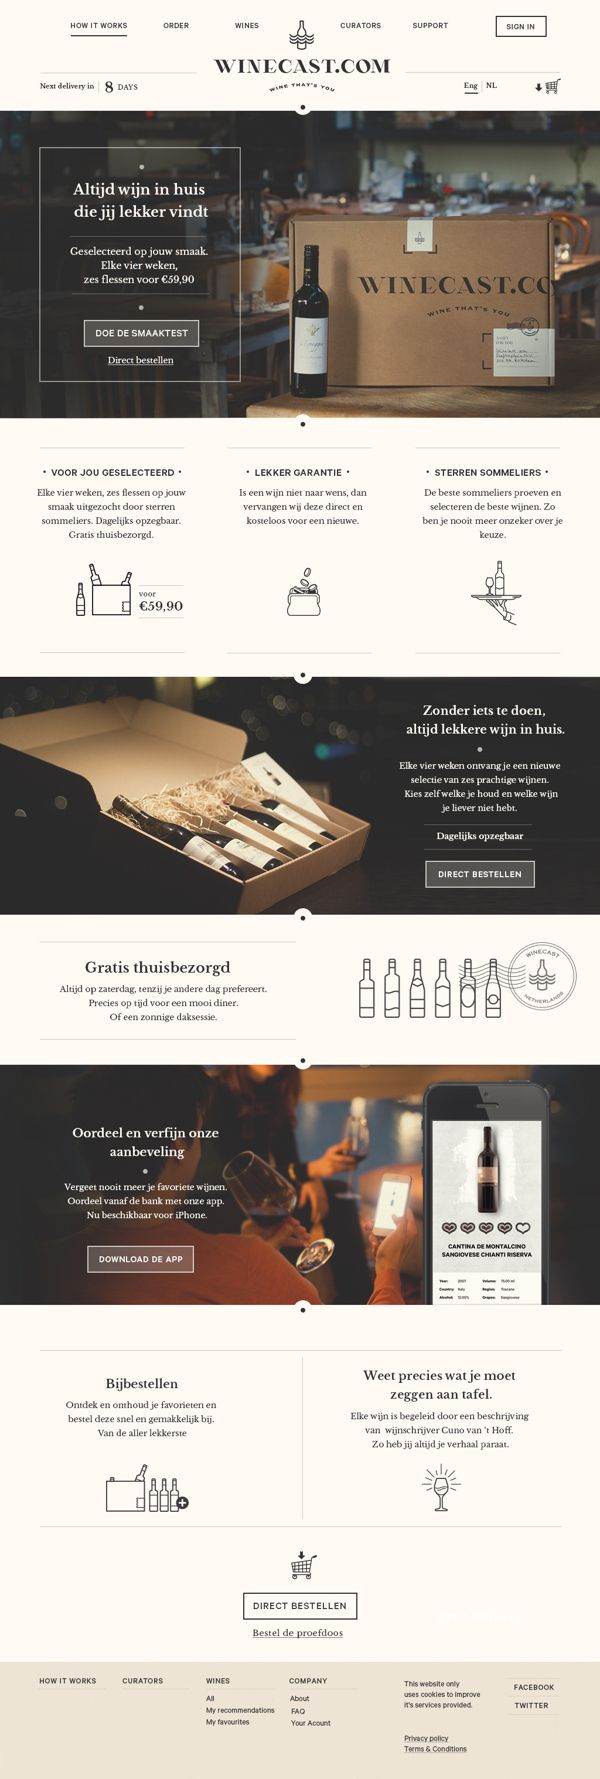 Website Design Inspiration #website